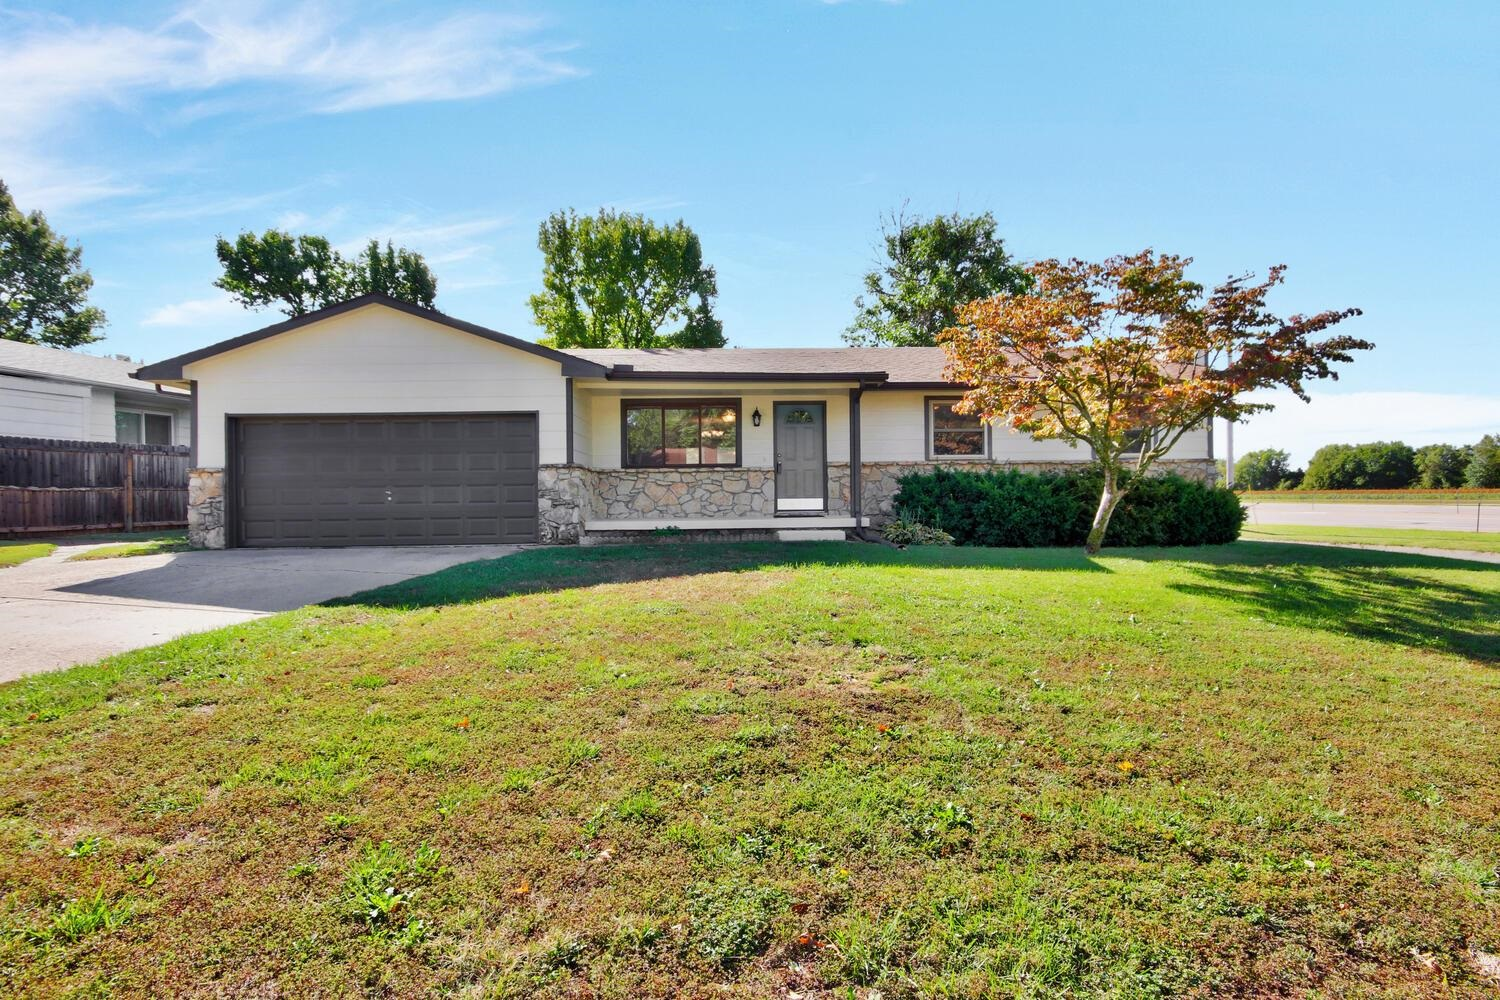 Great Ranch Home with new siding, exterior paint, and new concrete patio in the backyard.  Newer win